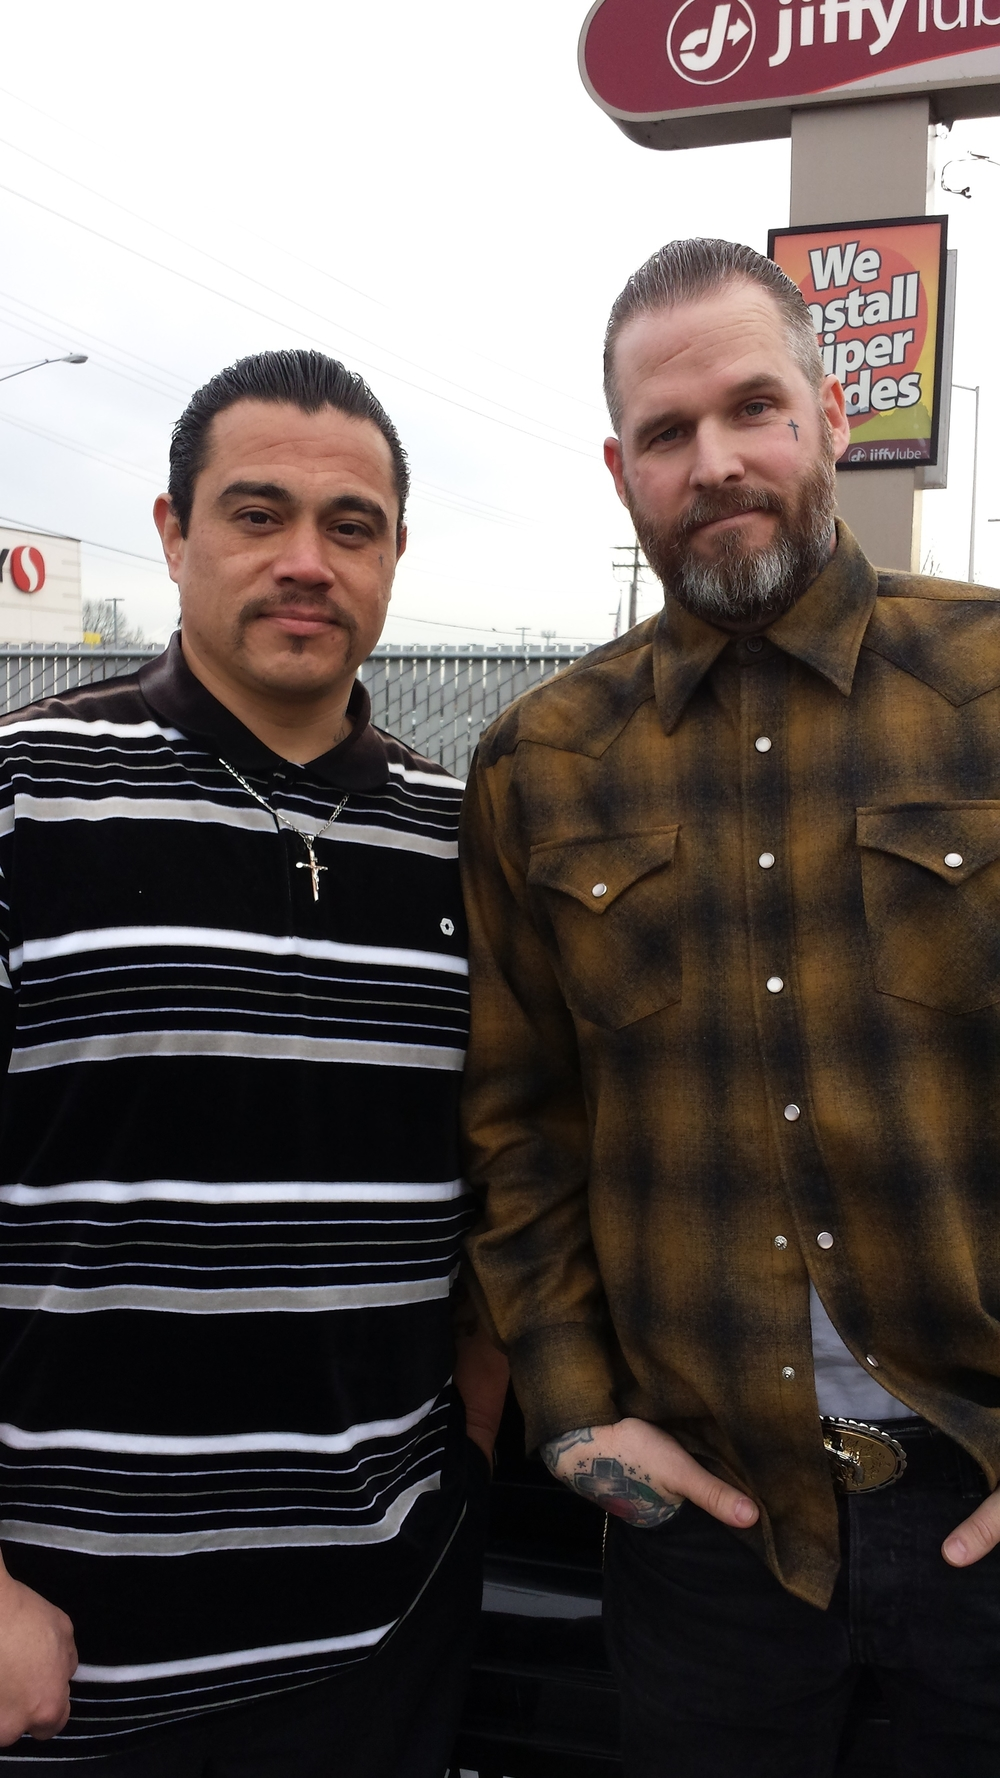 Former inmate Ruben Lira (left) and anchor ministry founder John ewell (right)